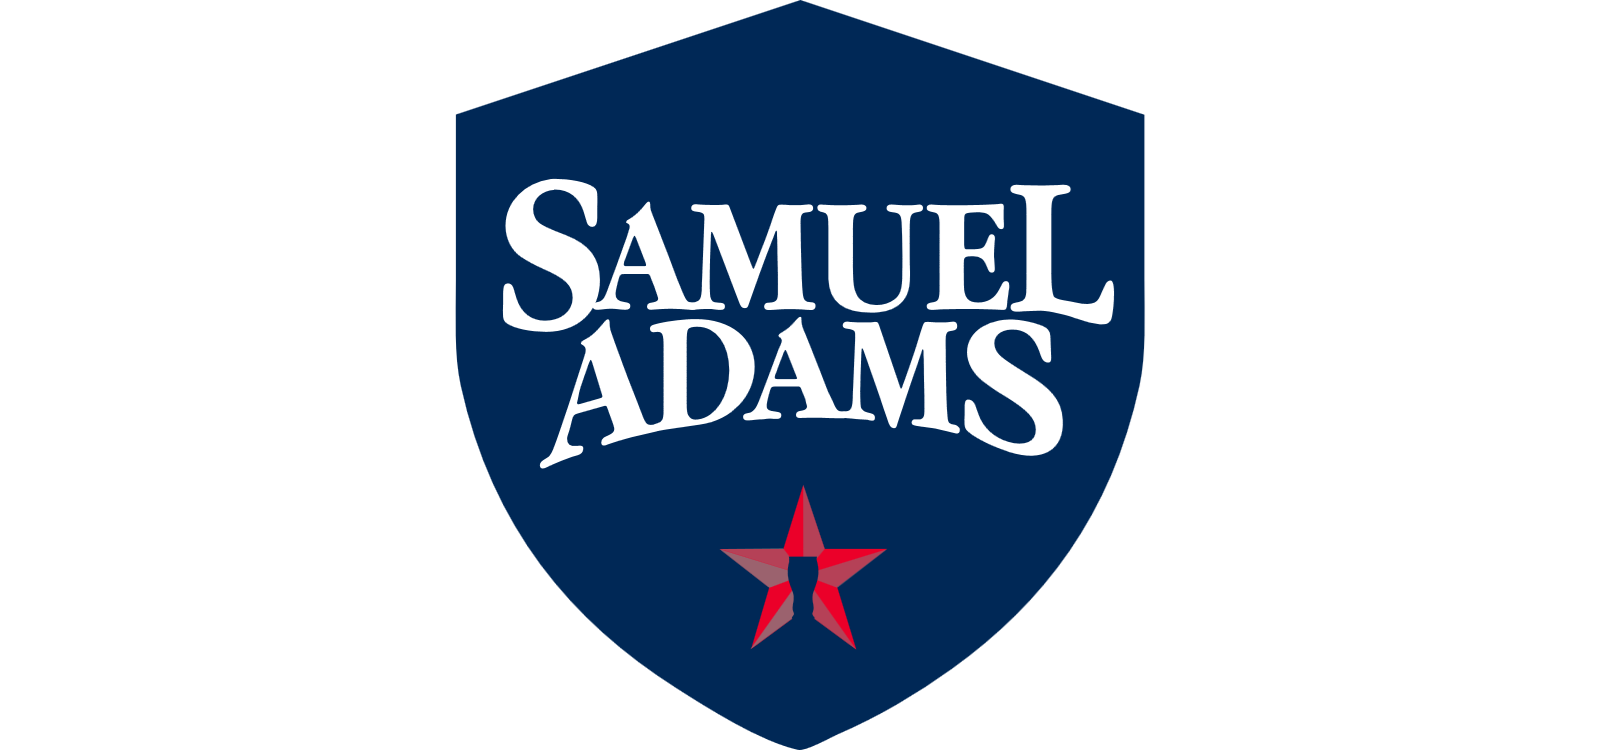 Samuel Adams Family